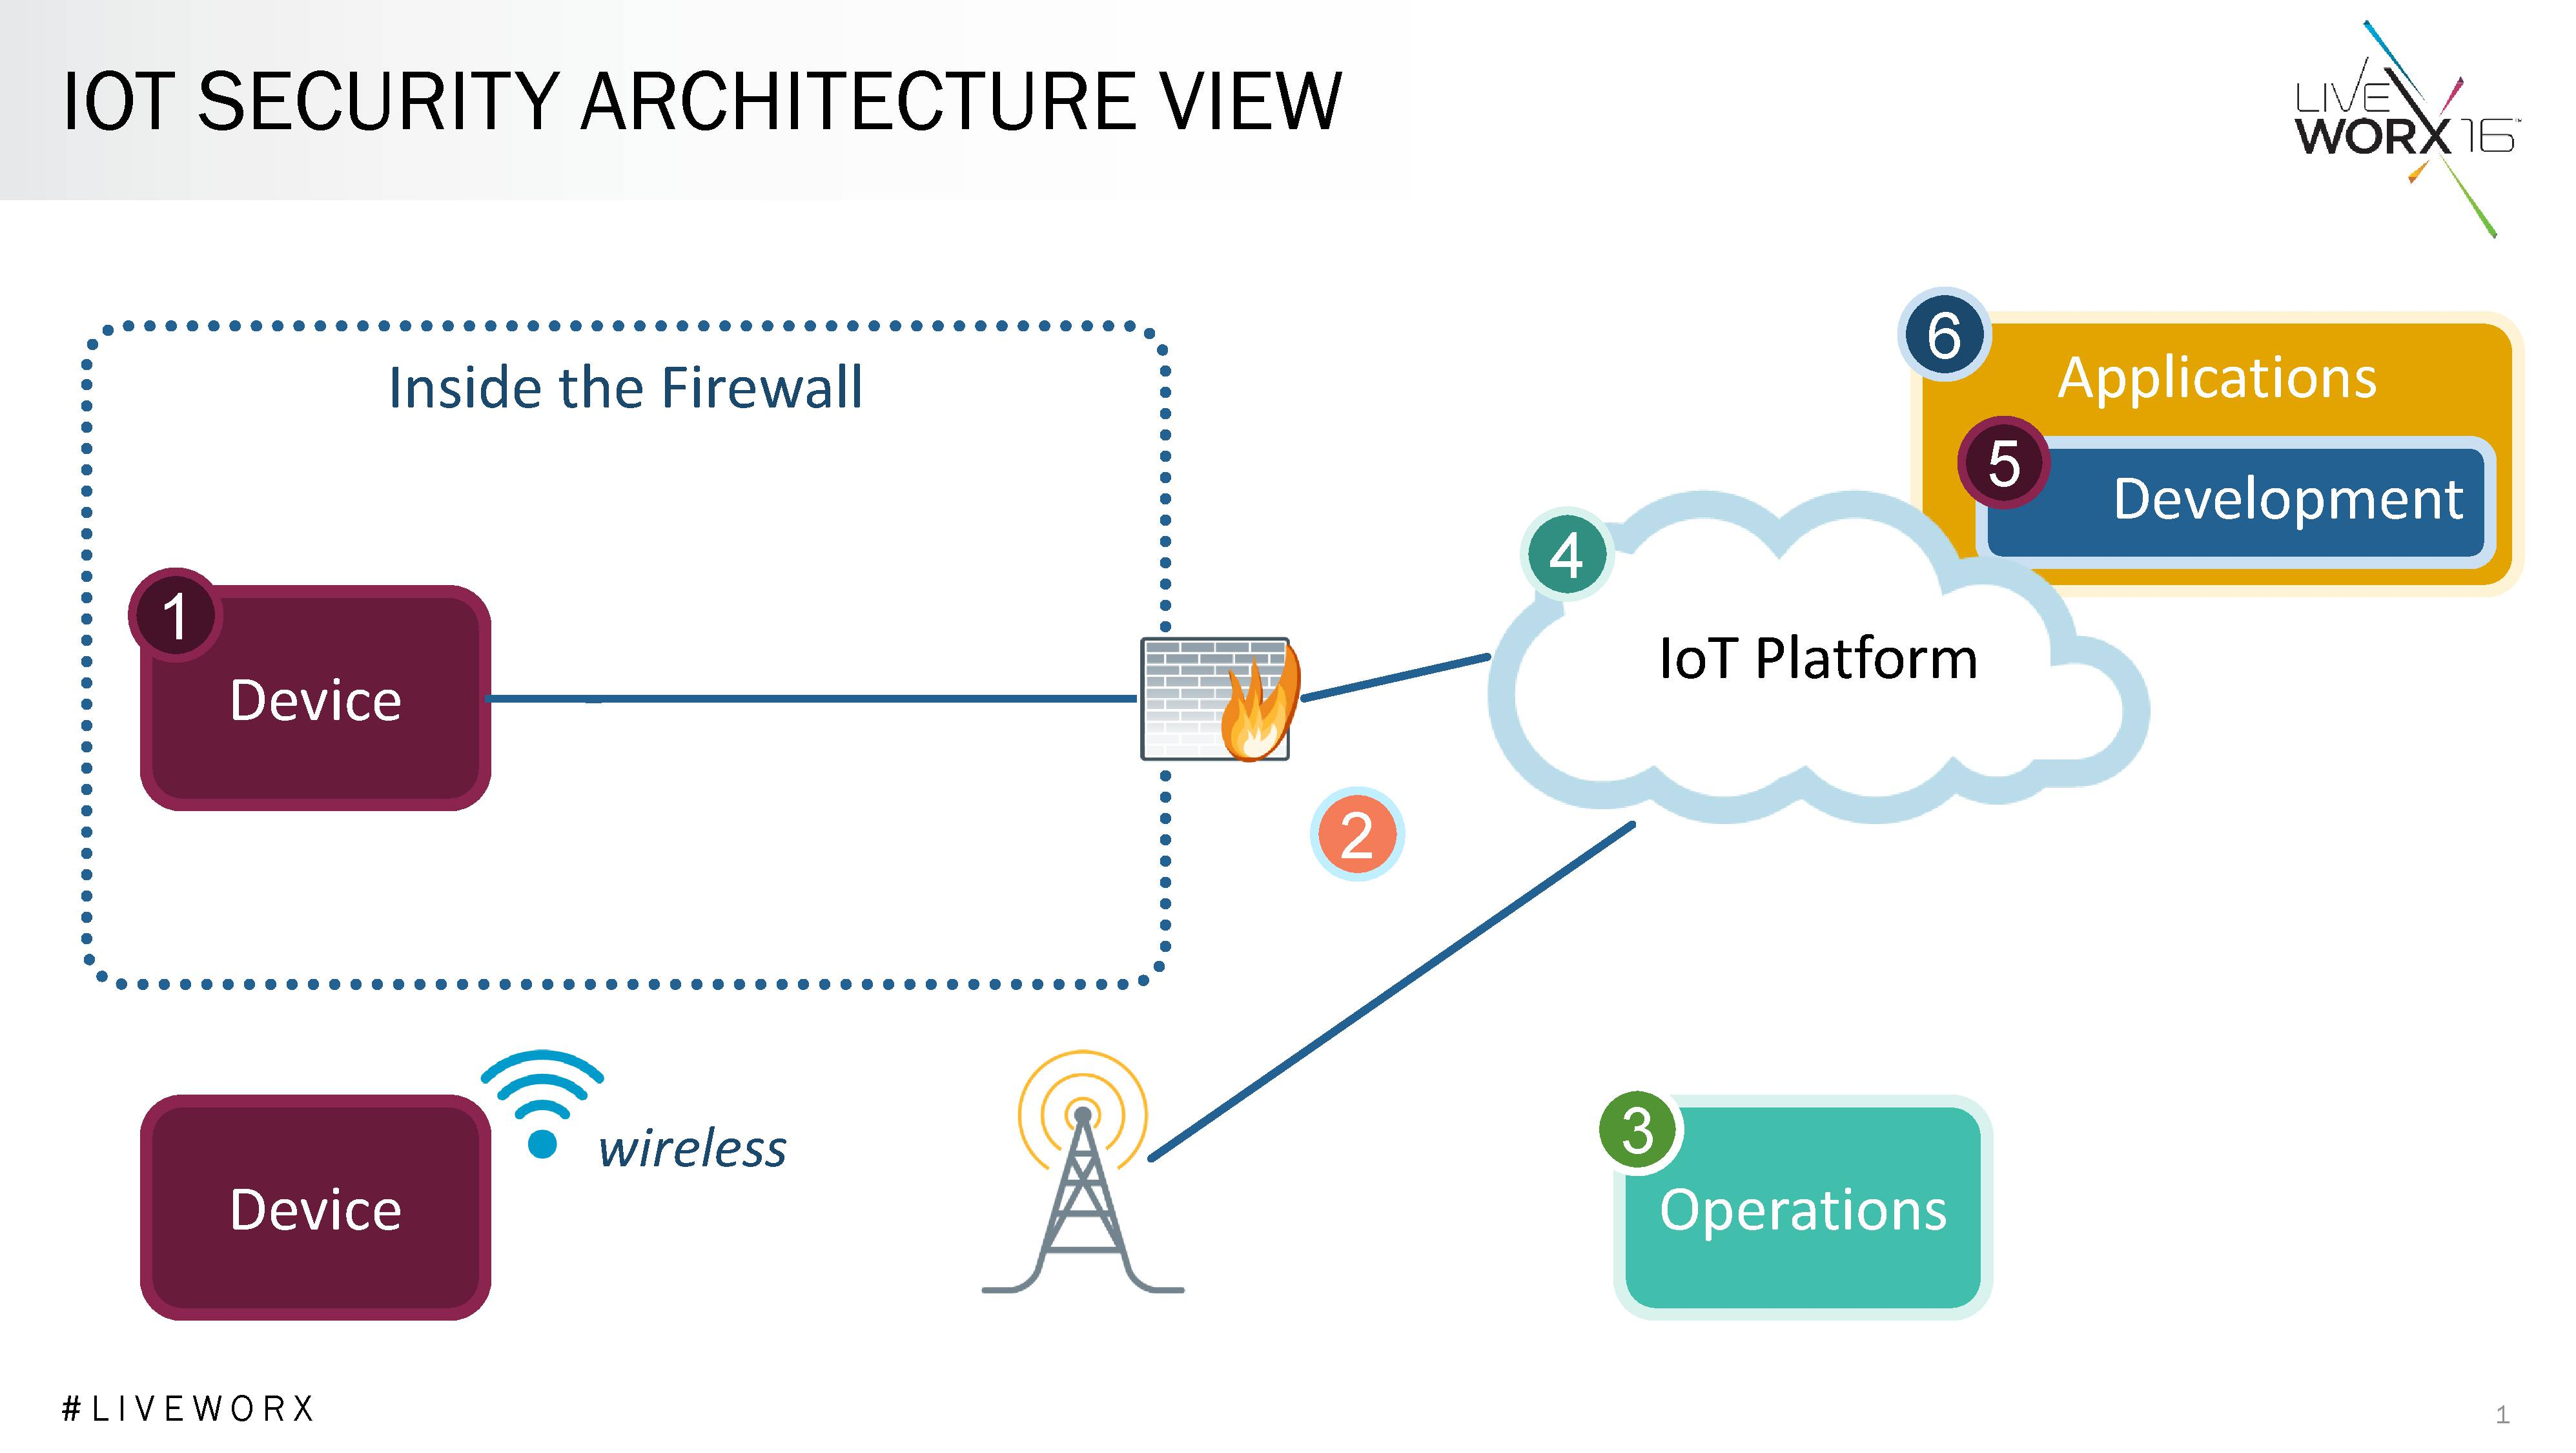 A 'common security model' against typical hazards in the IoT